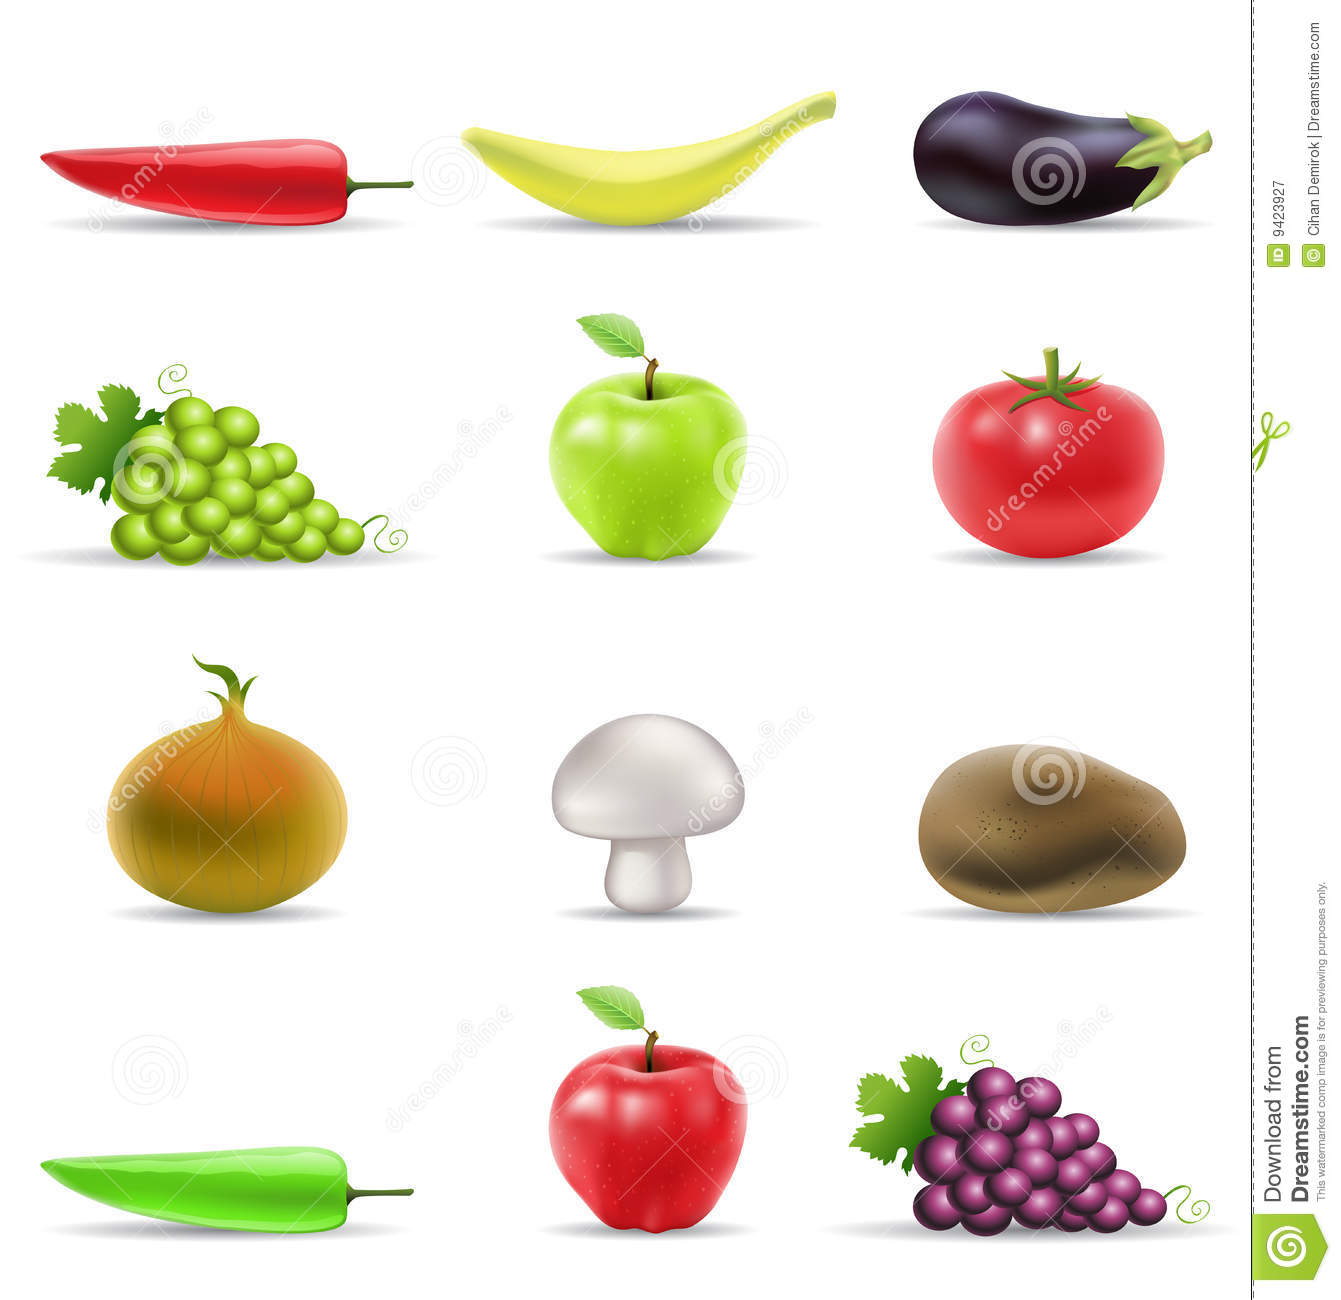 Fruit And Vegetables Icons Royalty Free Stock Photography - Image ...